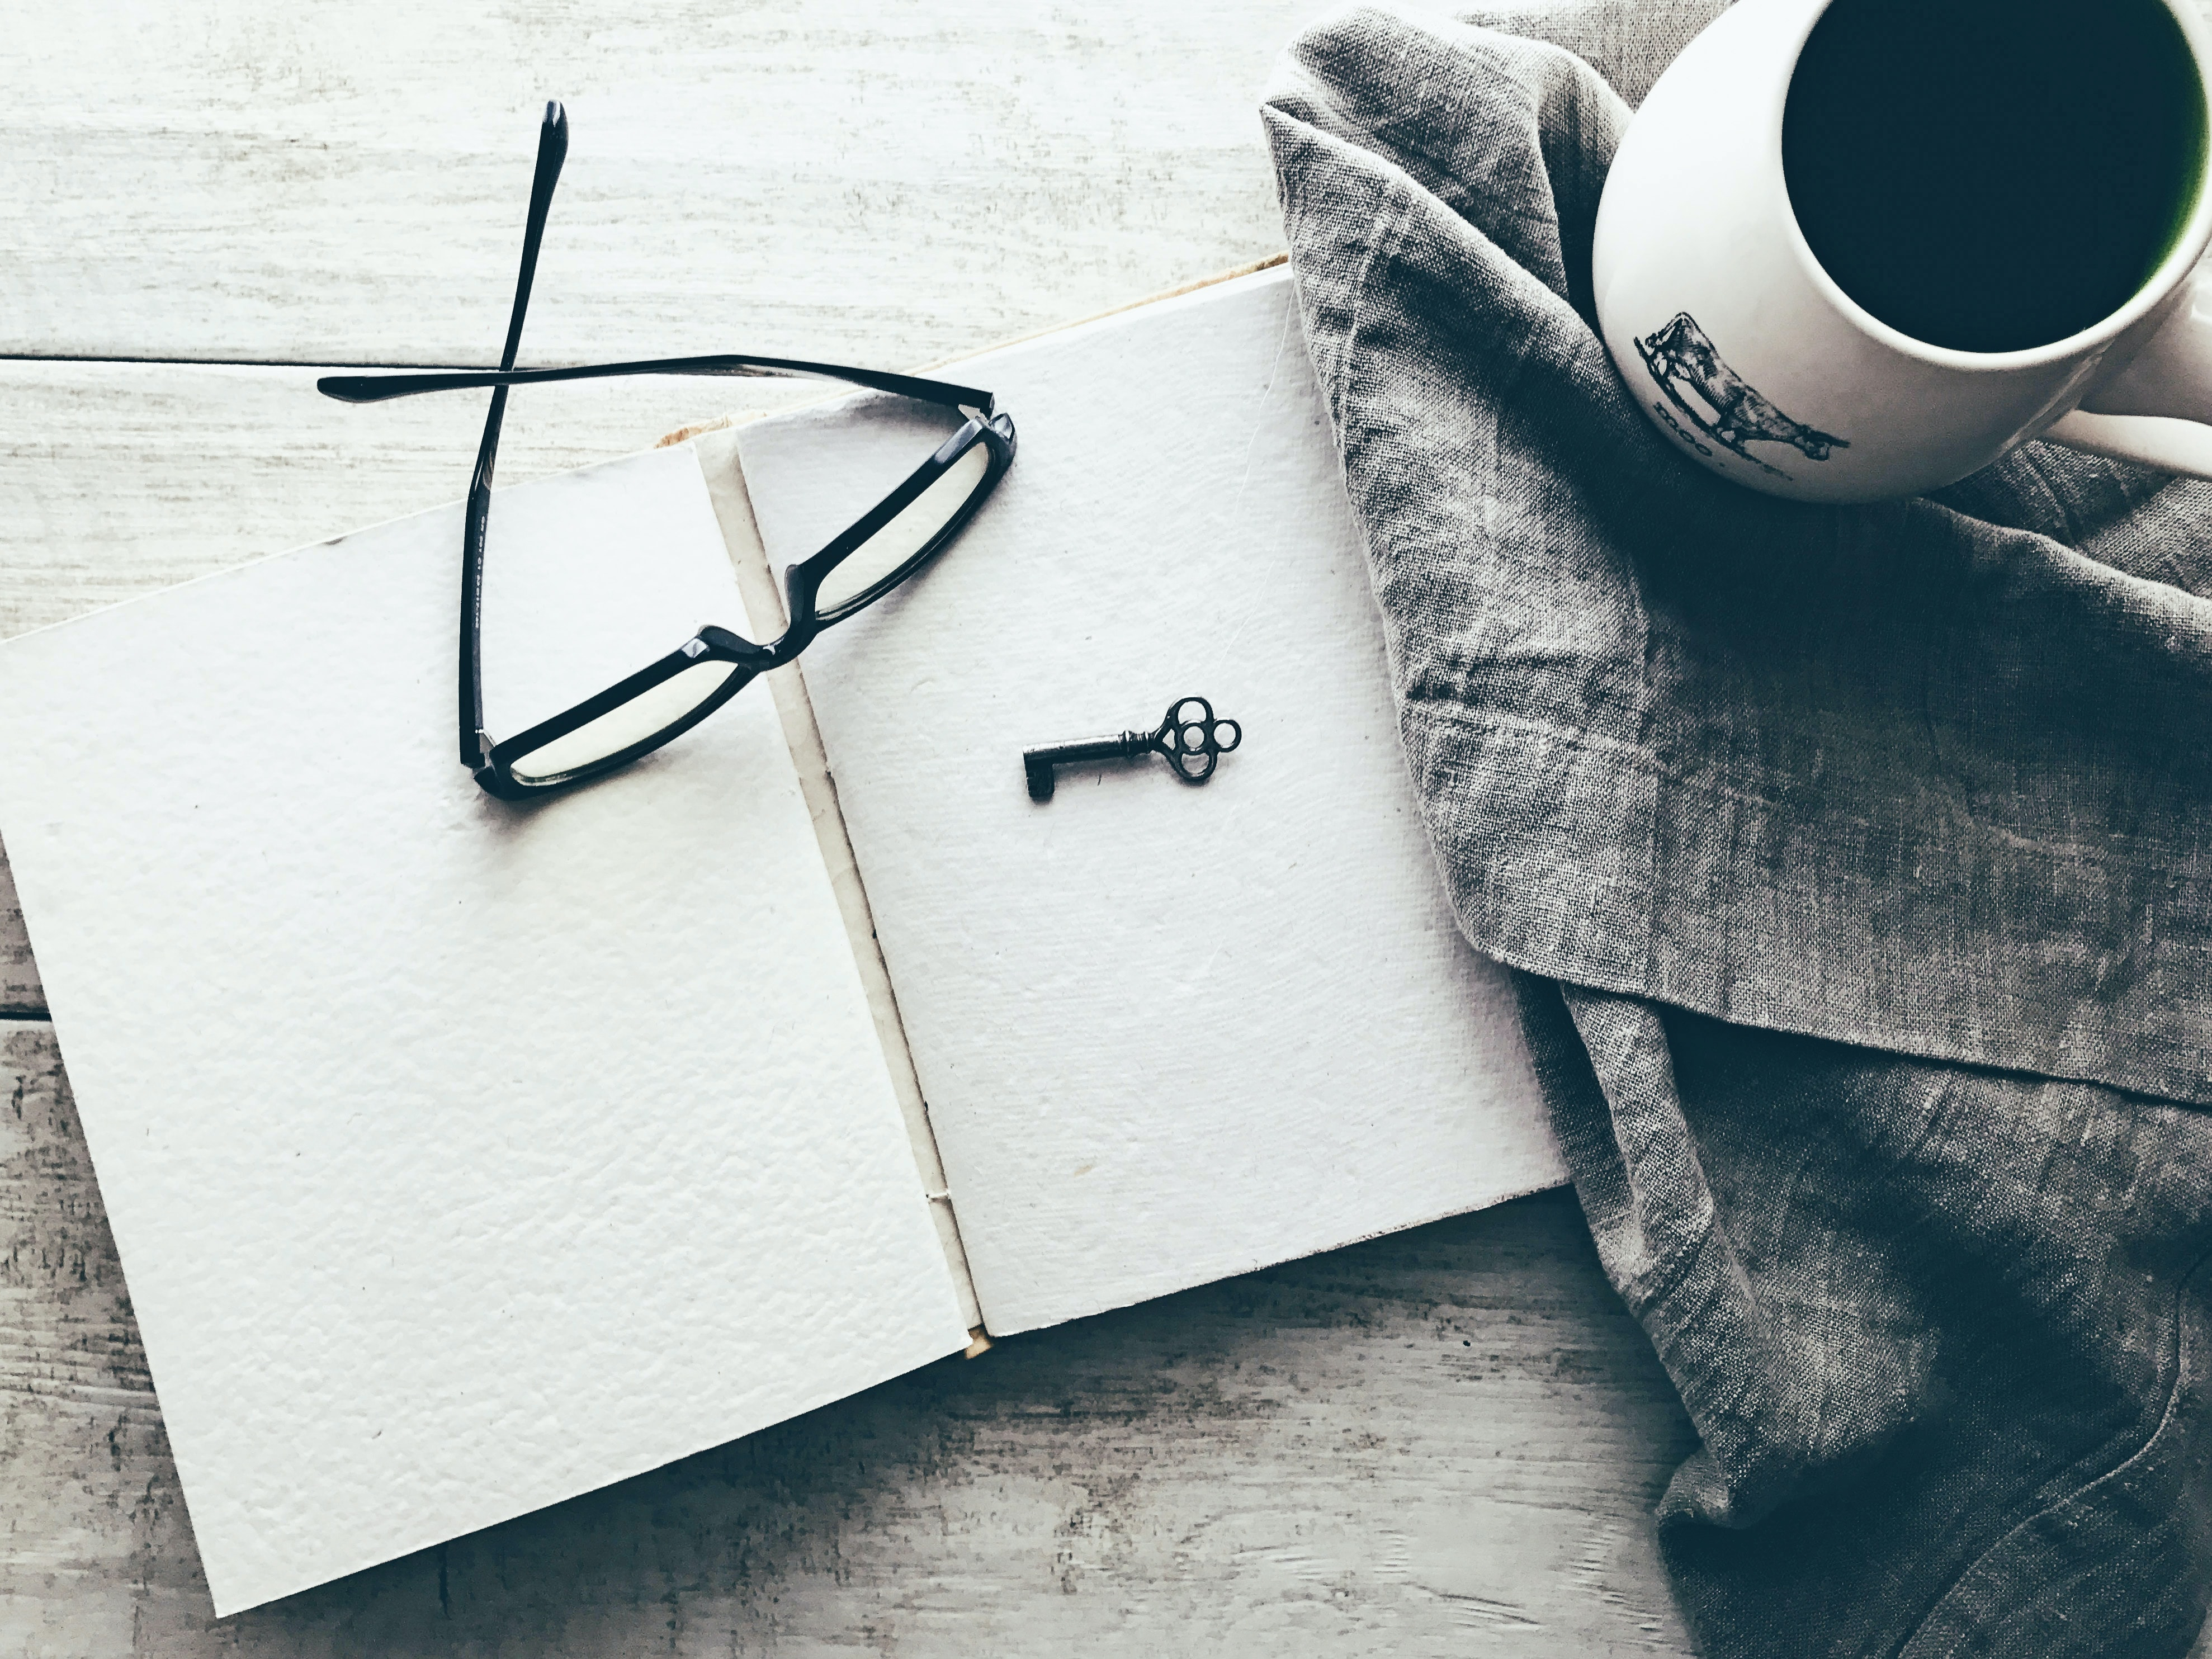 eyeglasses and skeleton key on white book